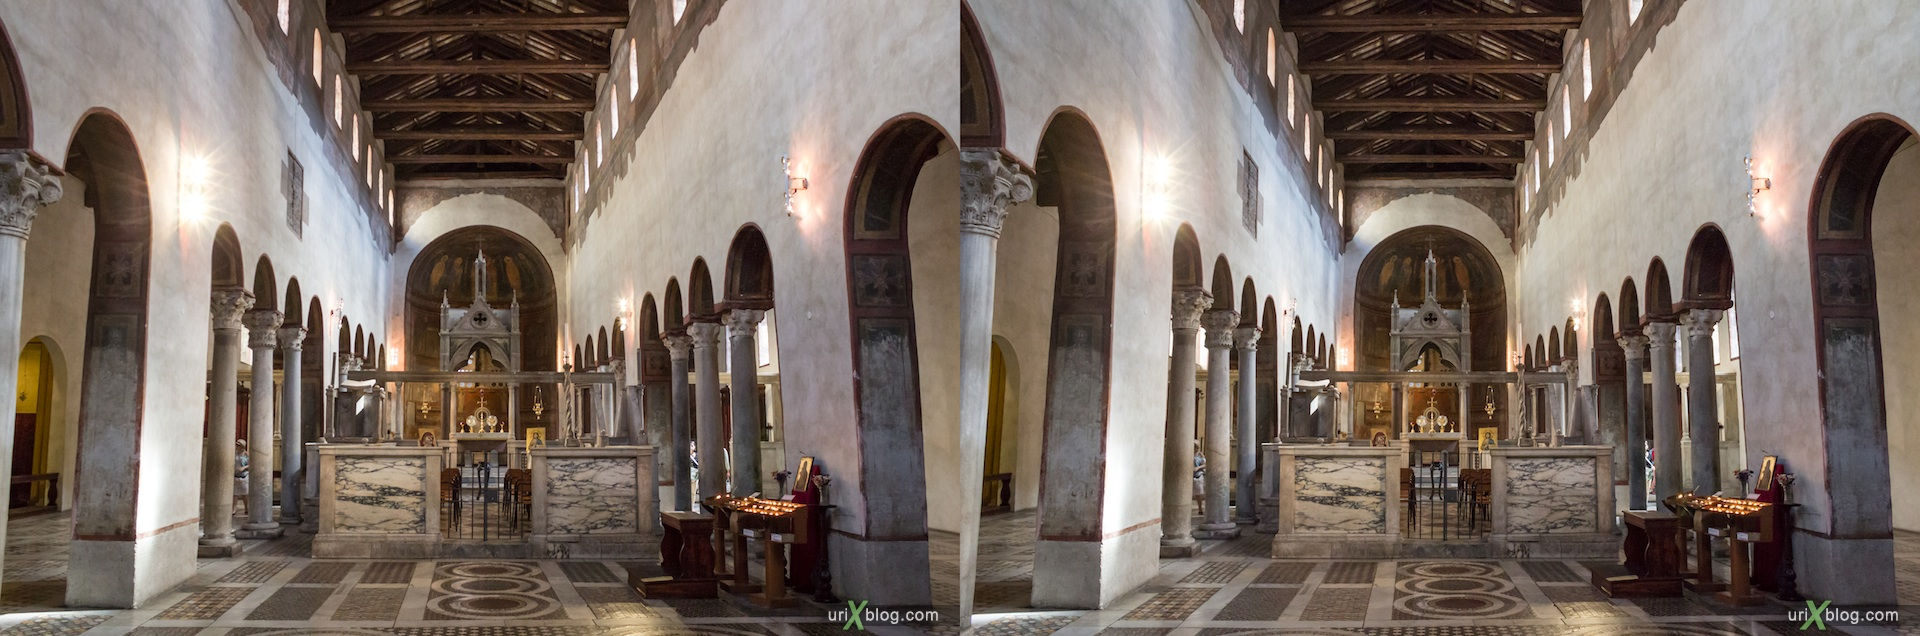 2012, church of Santa Maria in Cosmedin, Rome, Italy, cathedral, monastery, Christianity, Catholicism, 3D, stereo pair, cross-eyed, crossview, cross view stereo pair